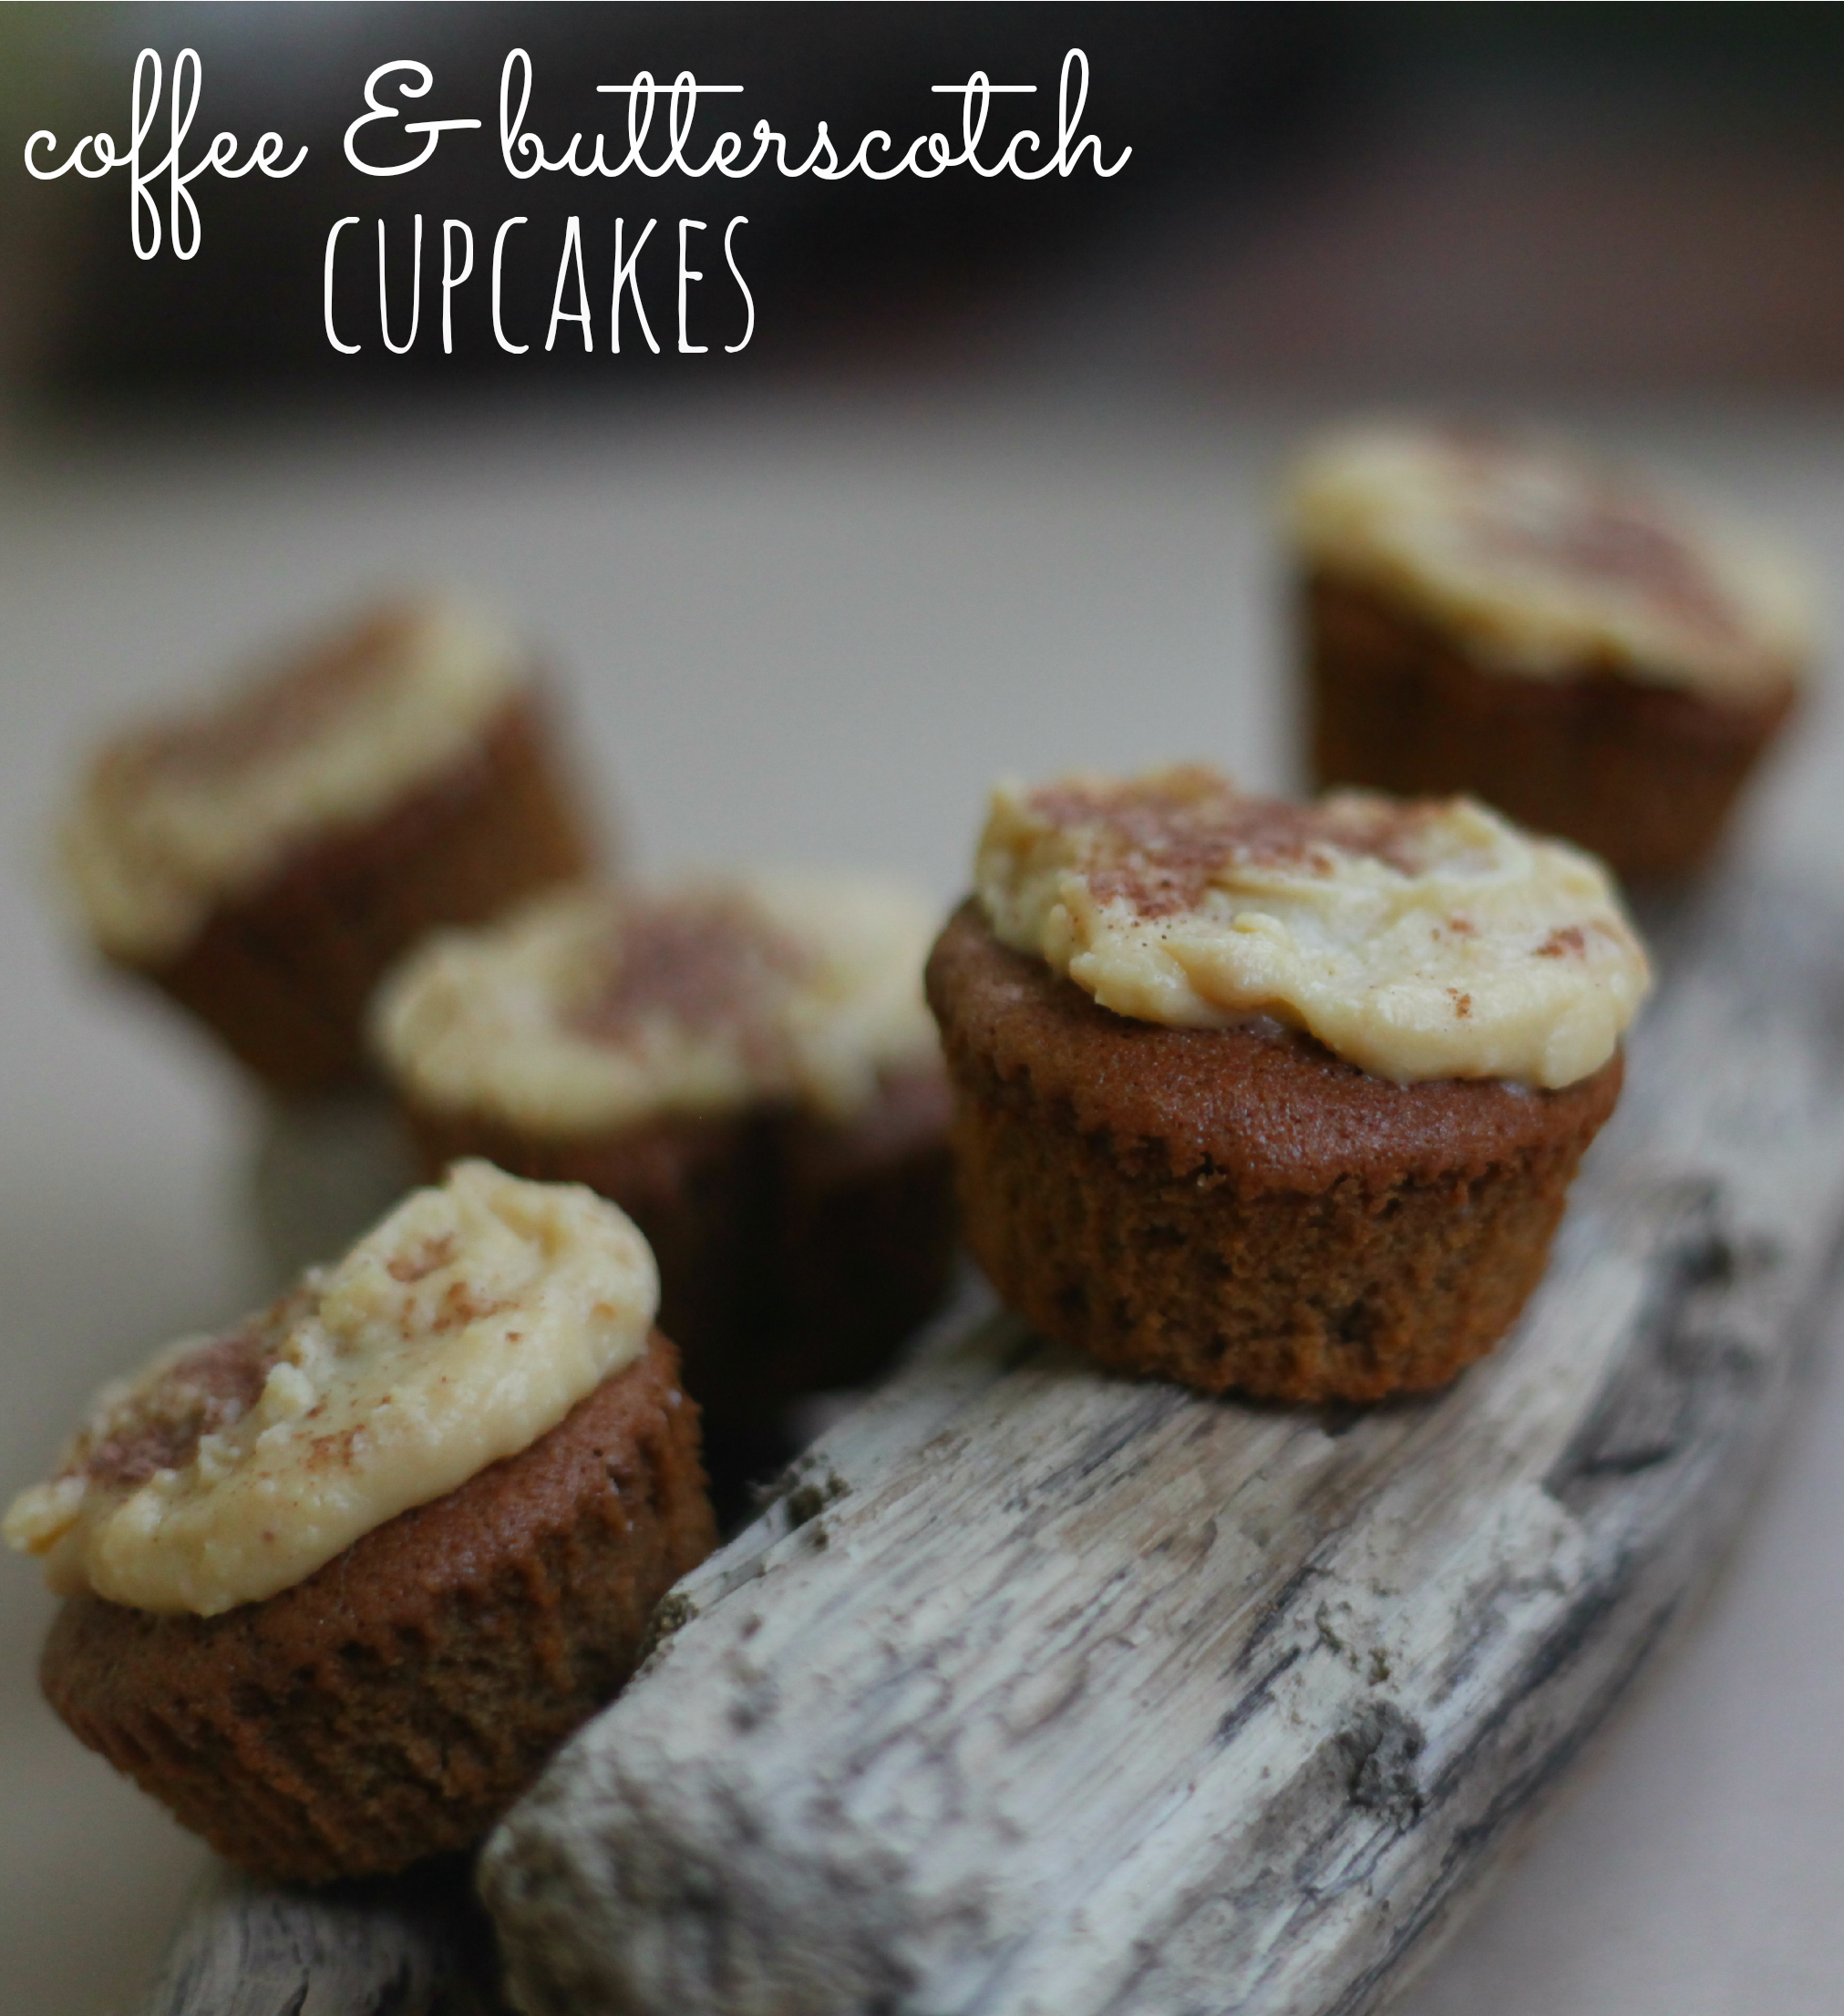 coffee & butterscotch cupcakes